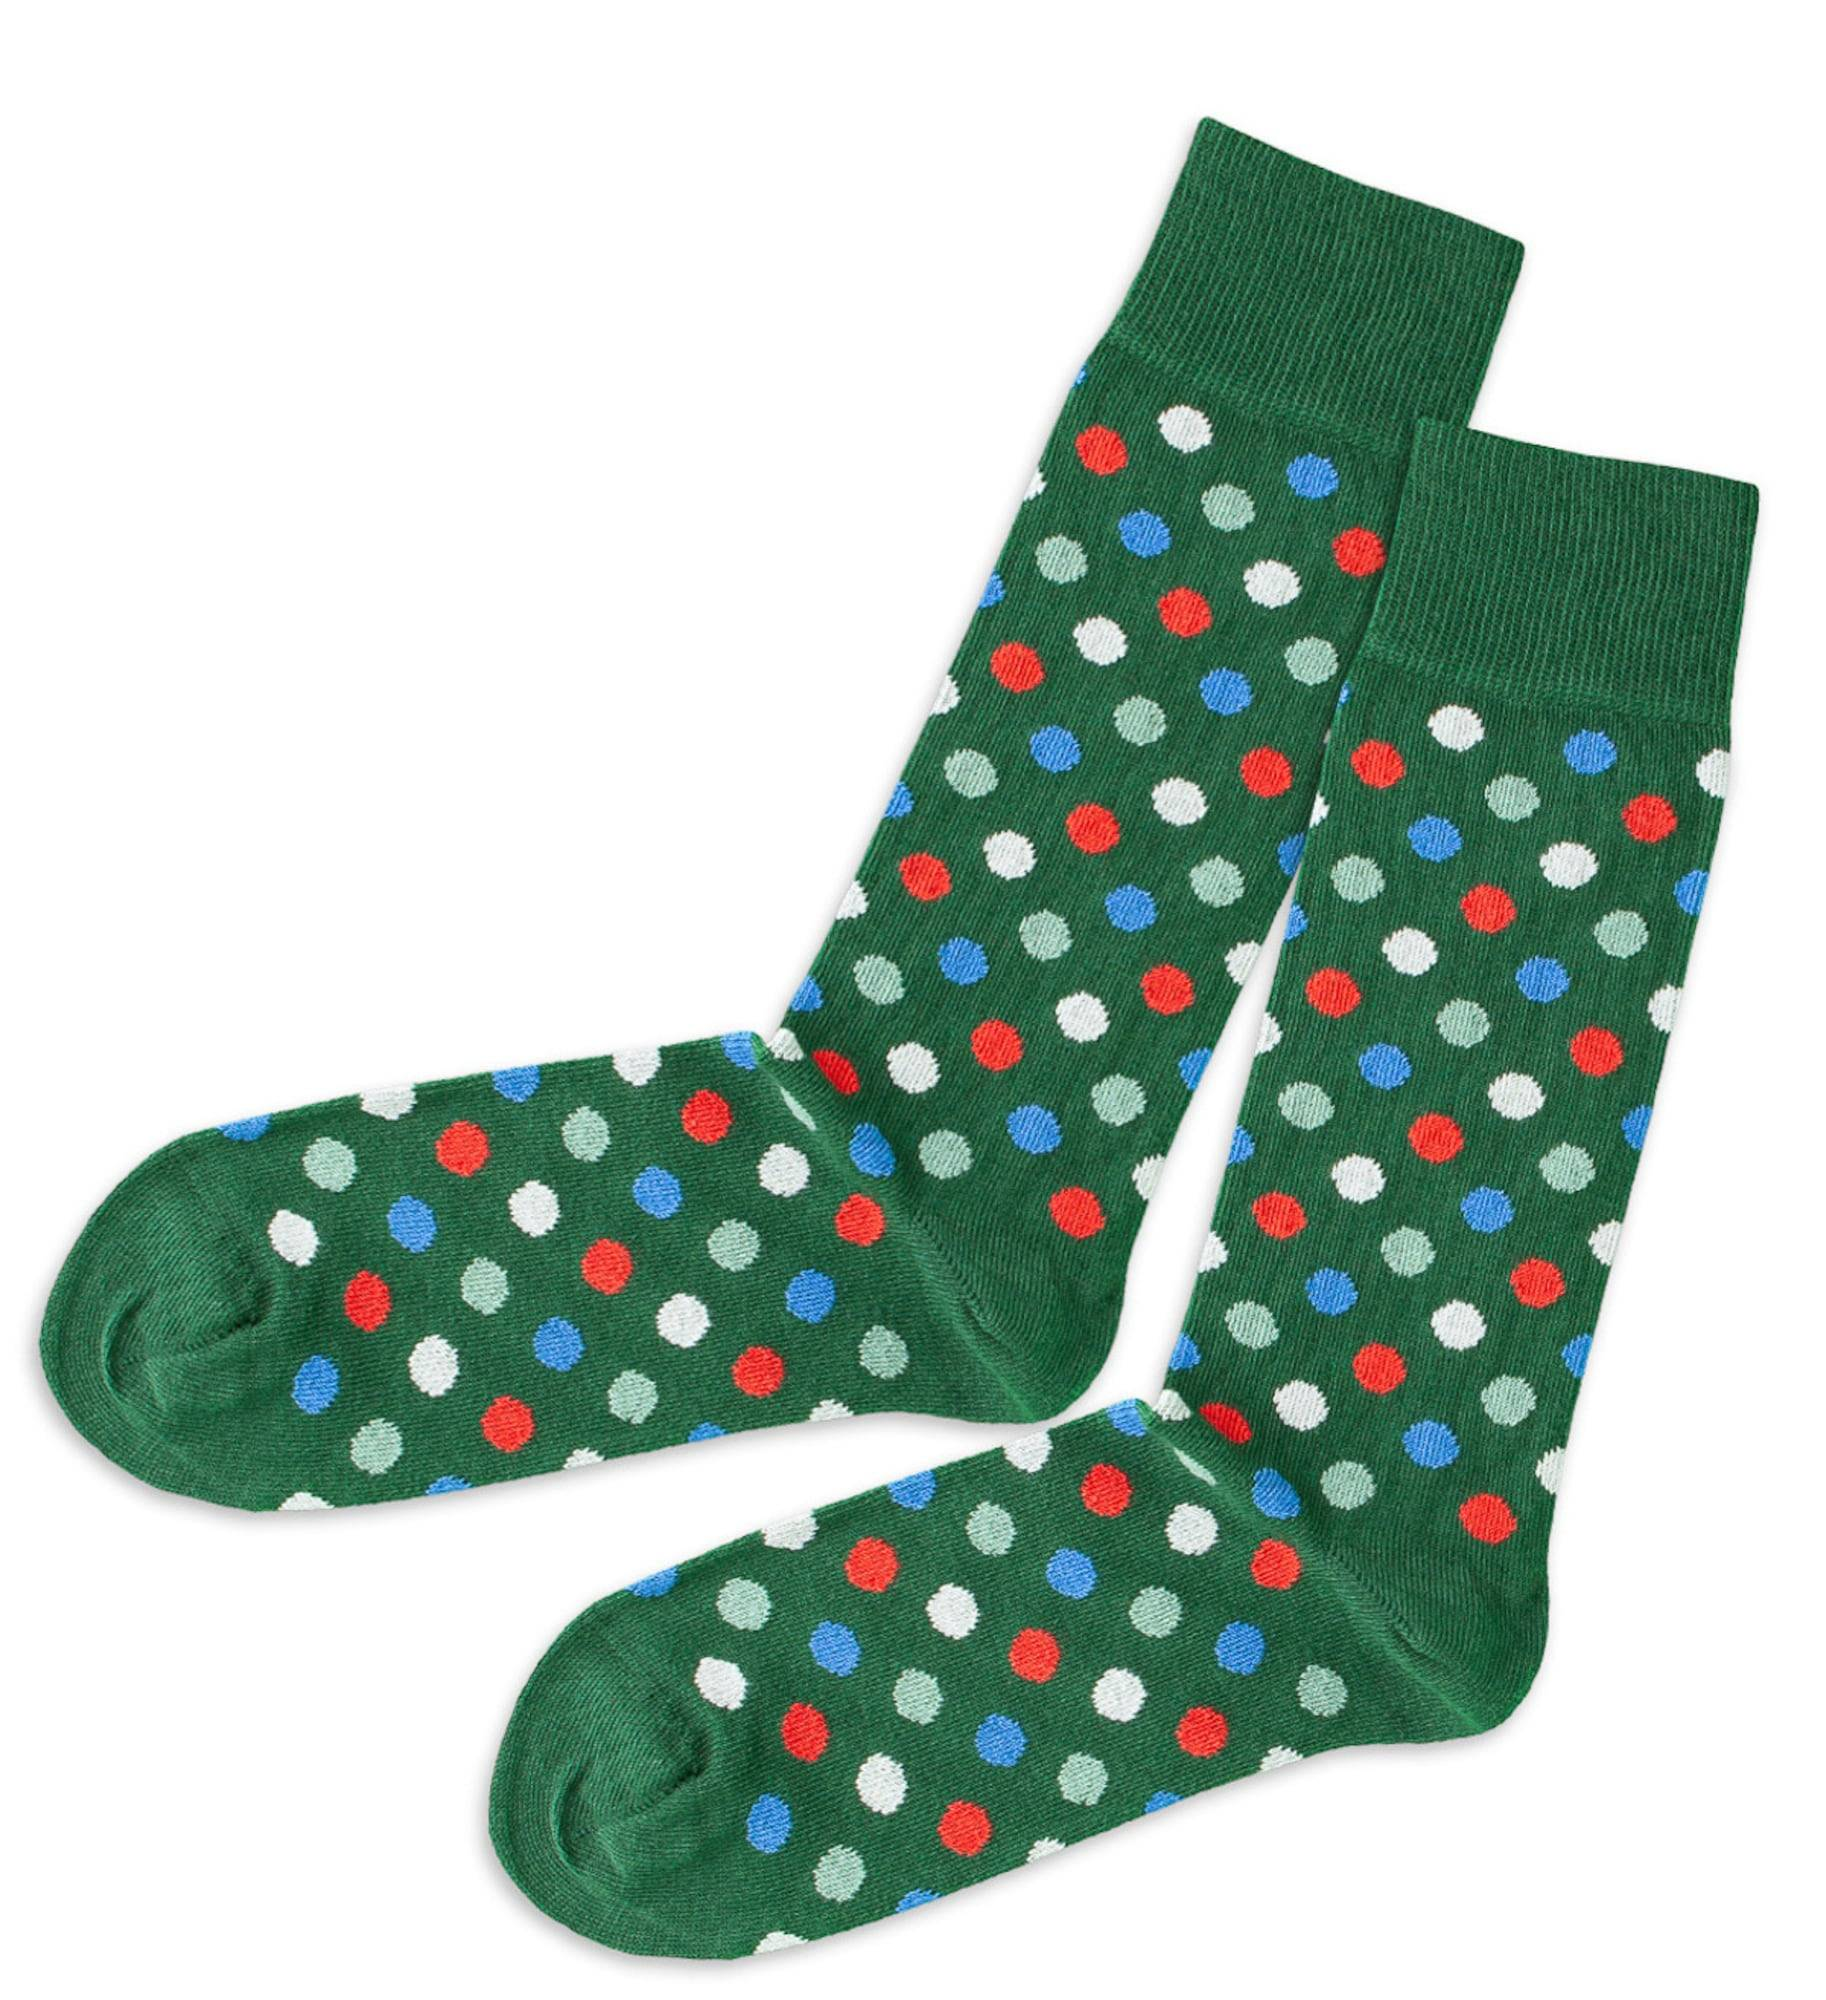 DillySocks Chaussettes  - Vert - Taille: 36-40 - female